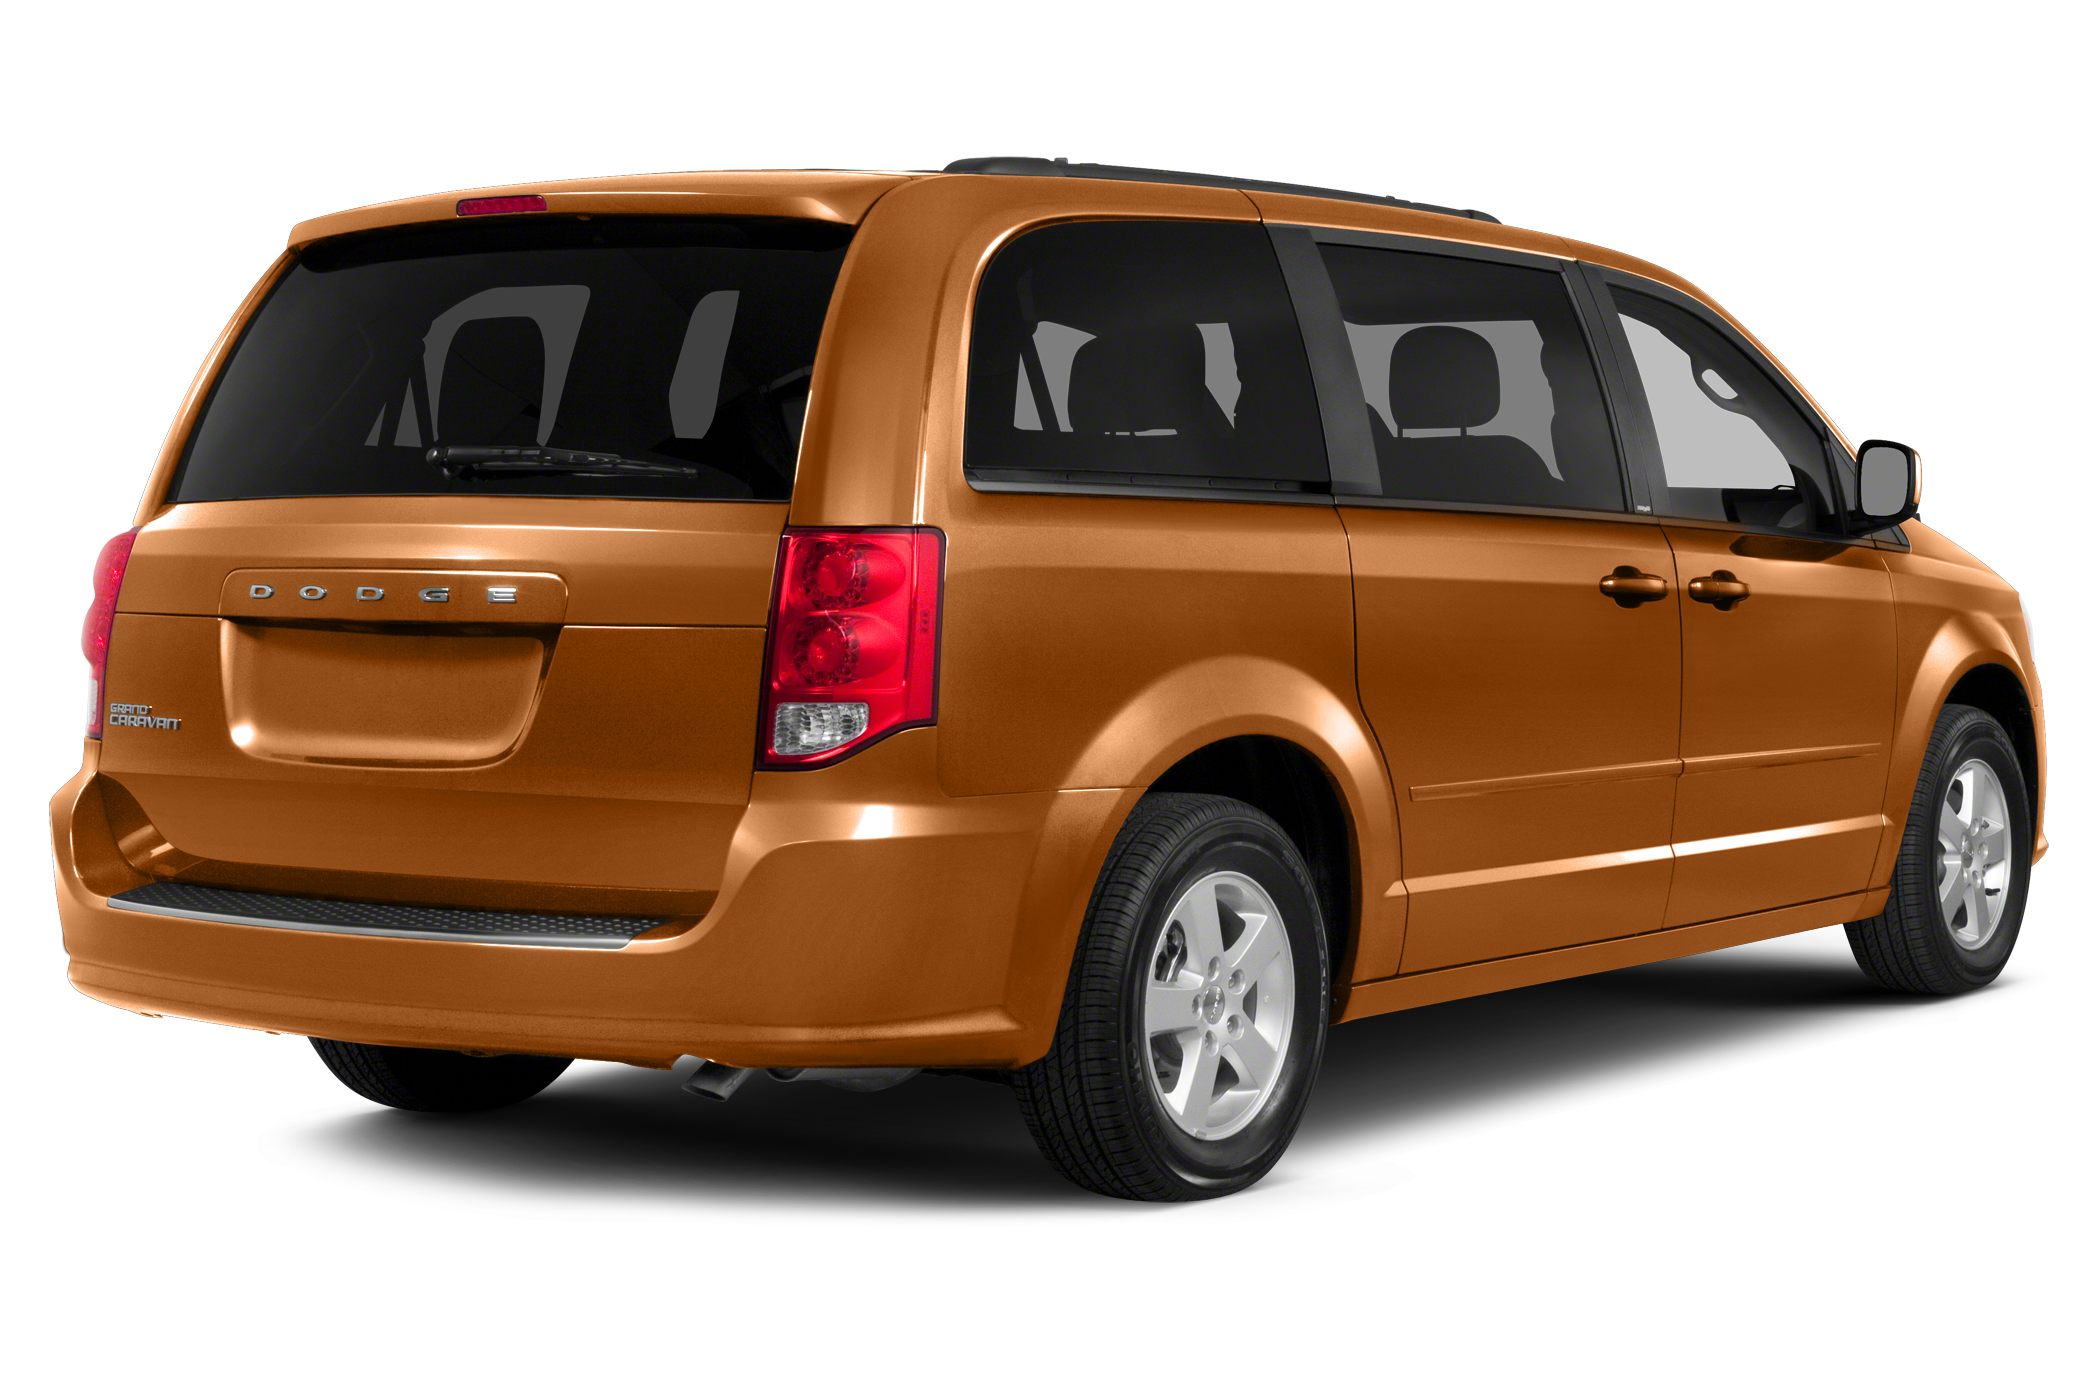 2015 dodge grand caravan sxt cars and vehicles san bernardino ca. Black Bedroom Furniture Sets. Home Design Ideas